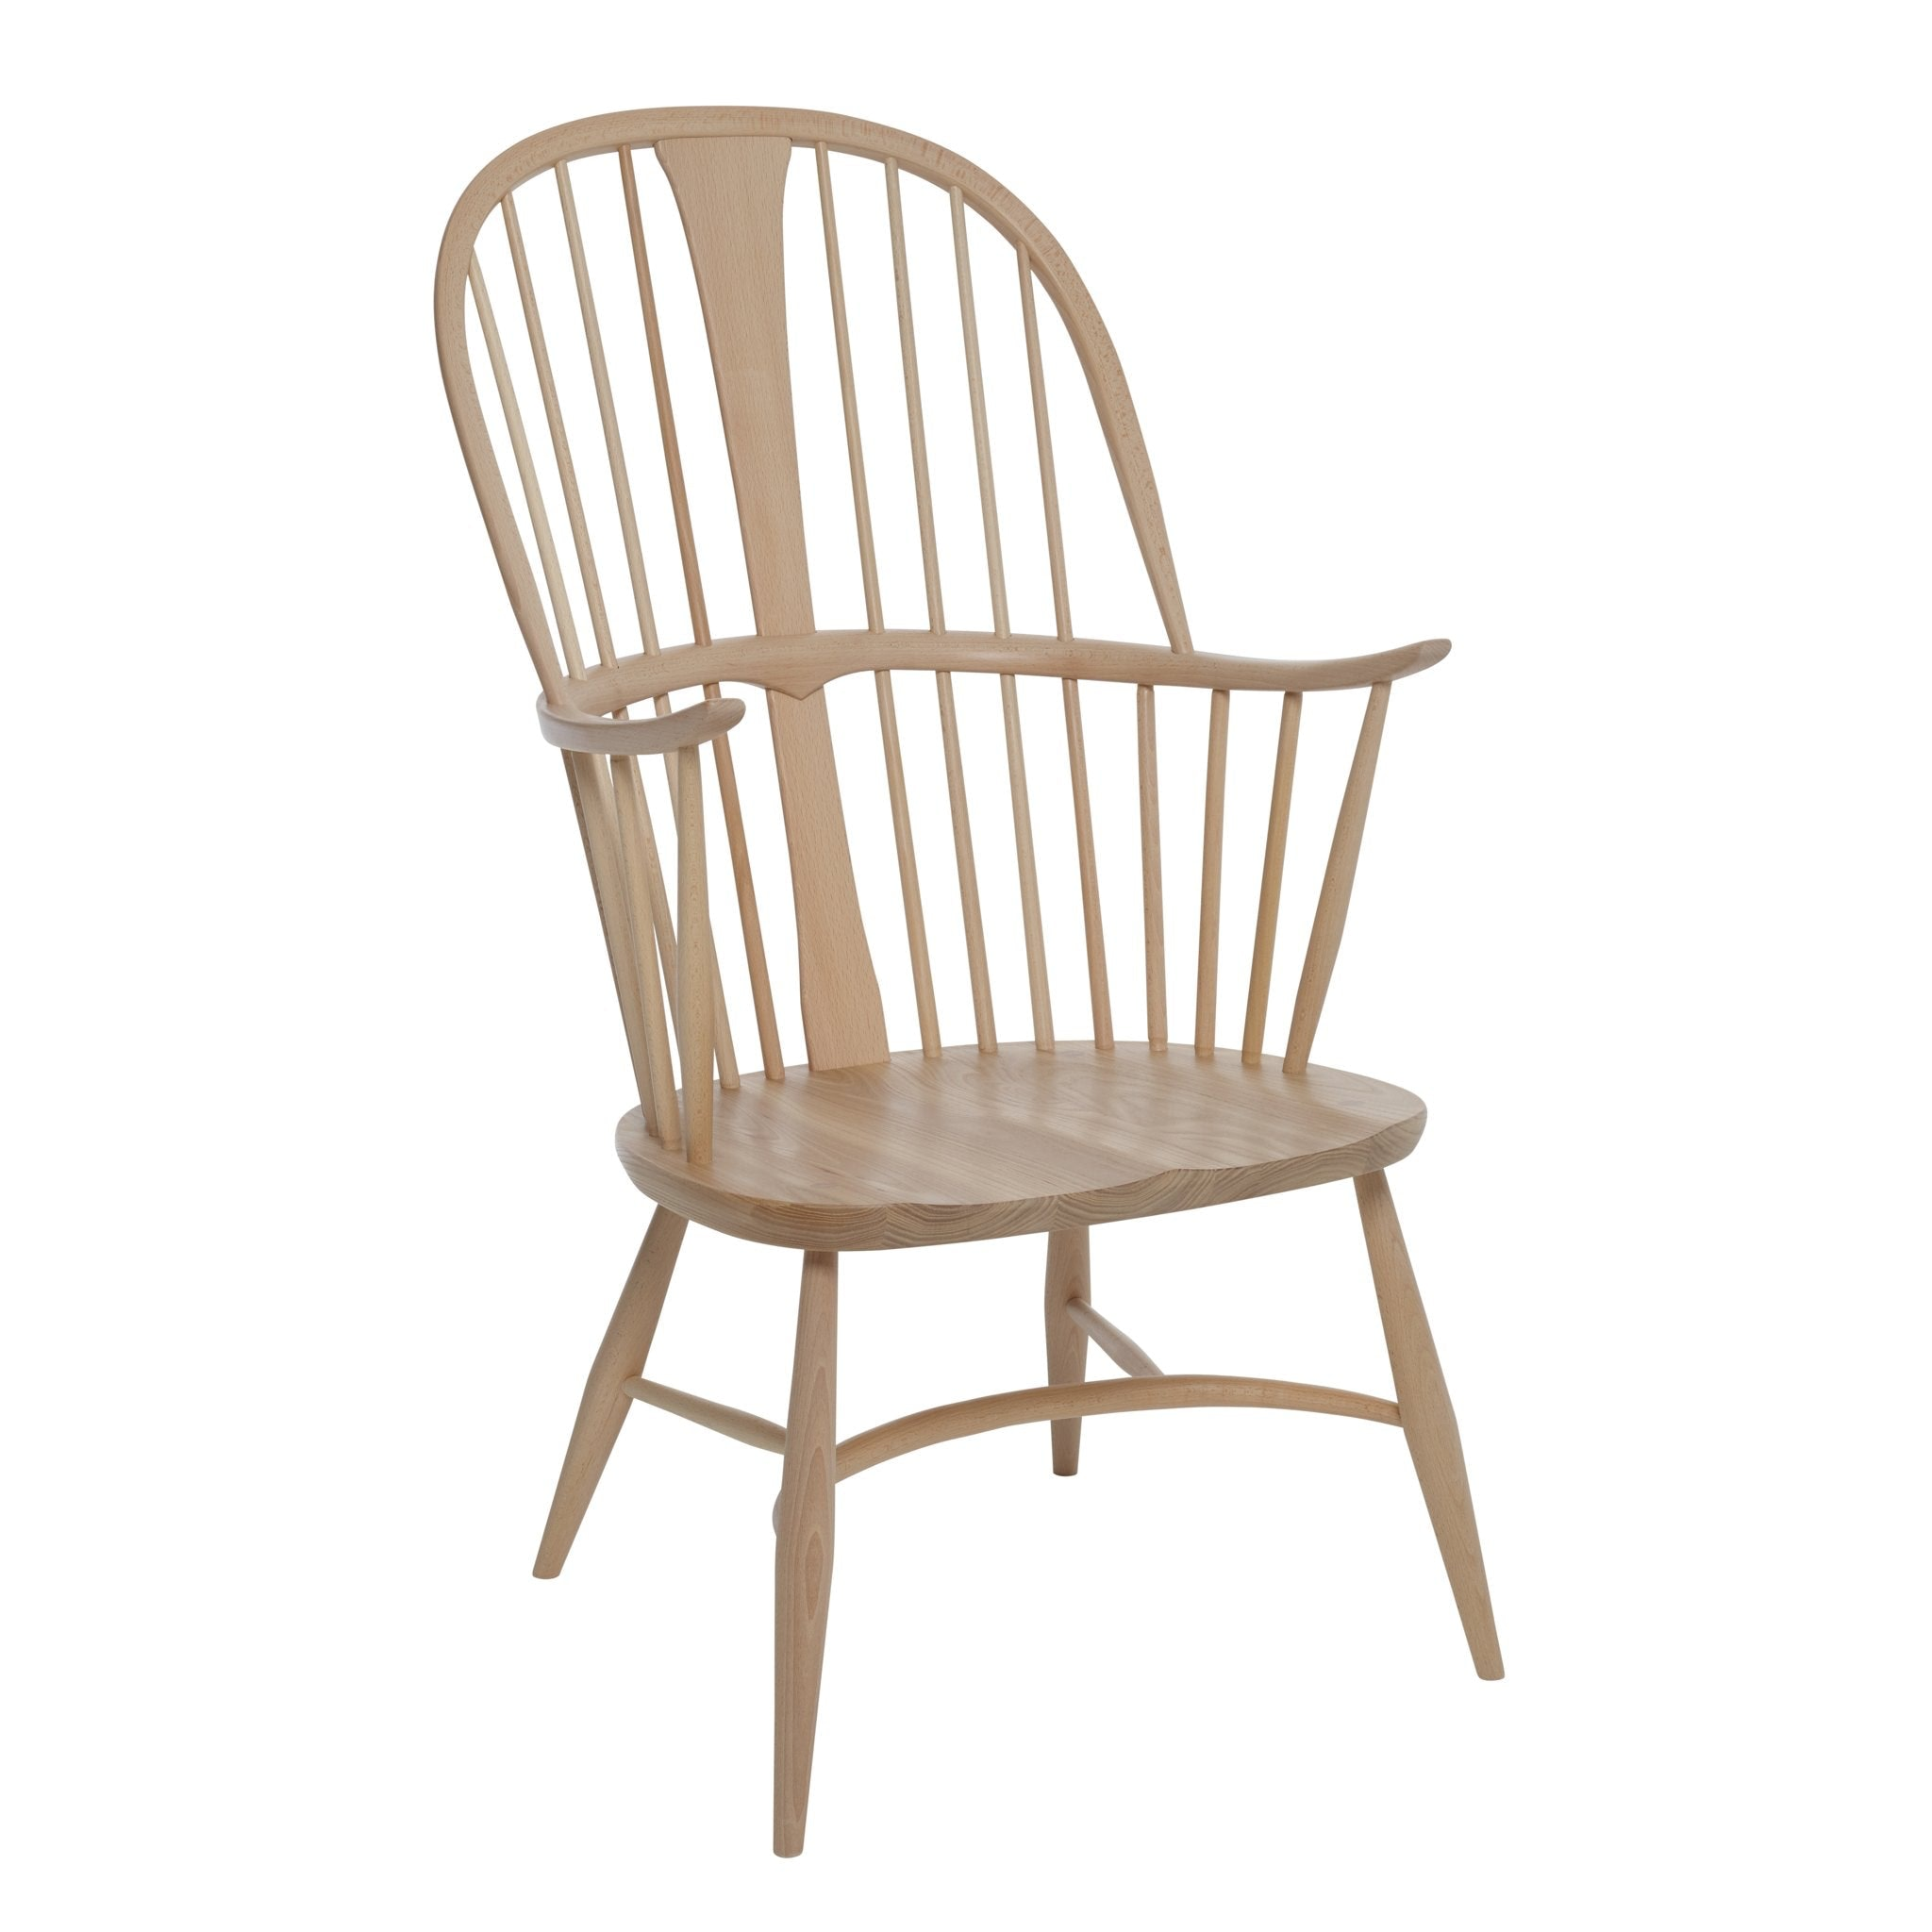 Originals Chairmakers Chair By Ercol Haus 174